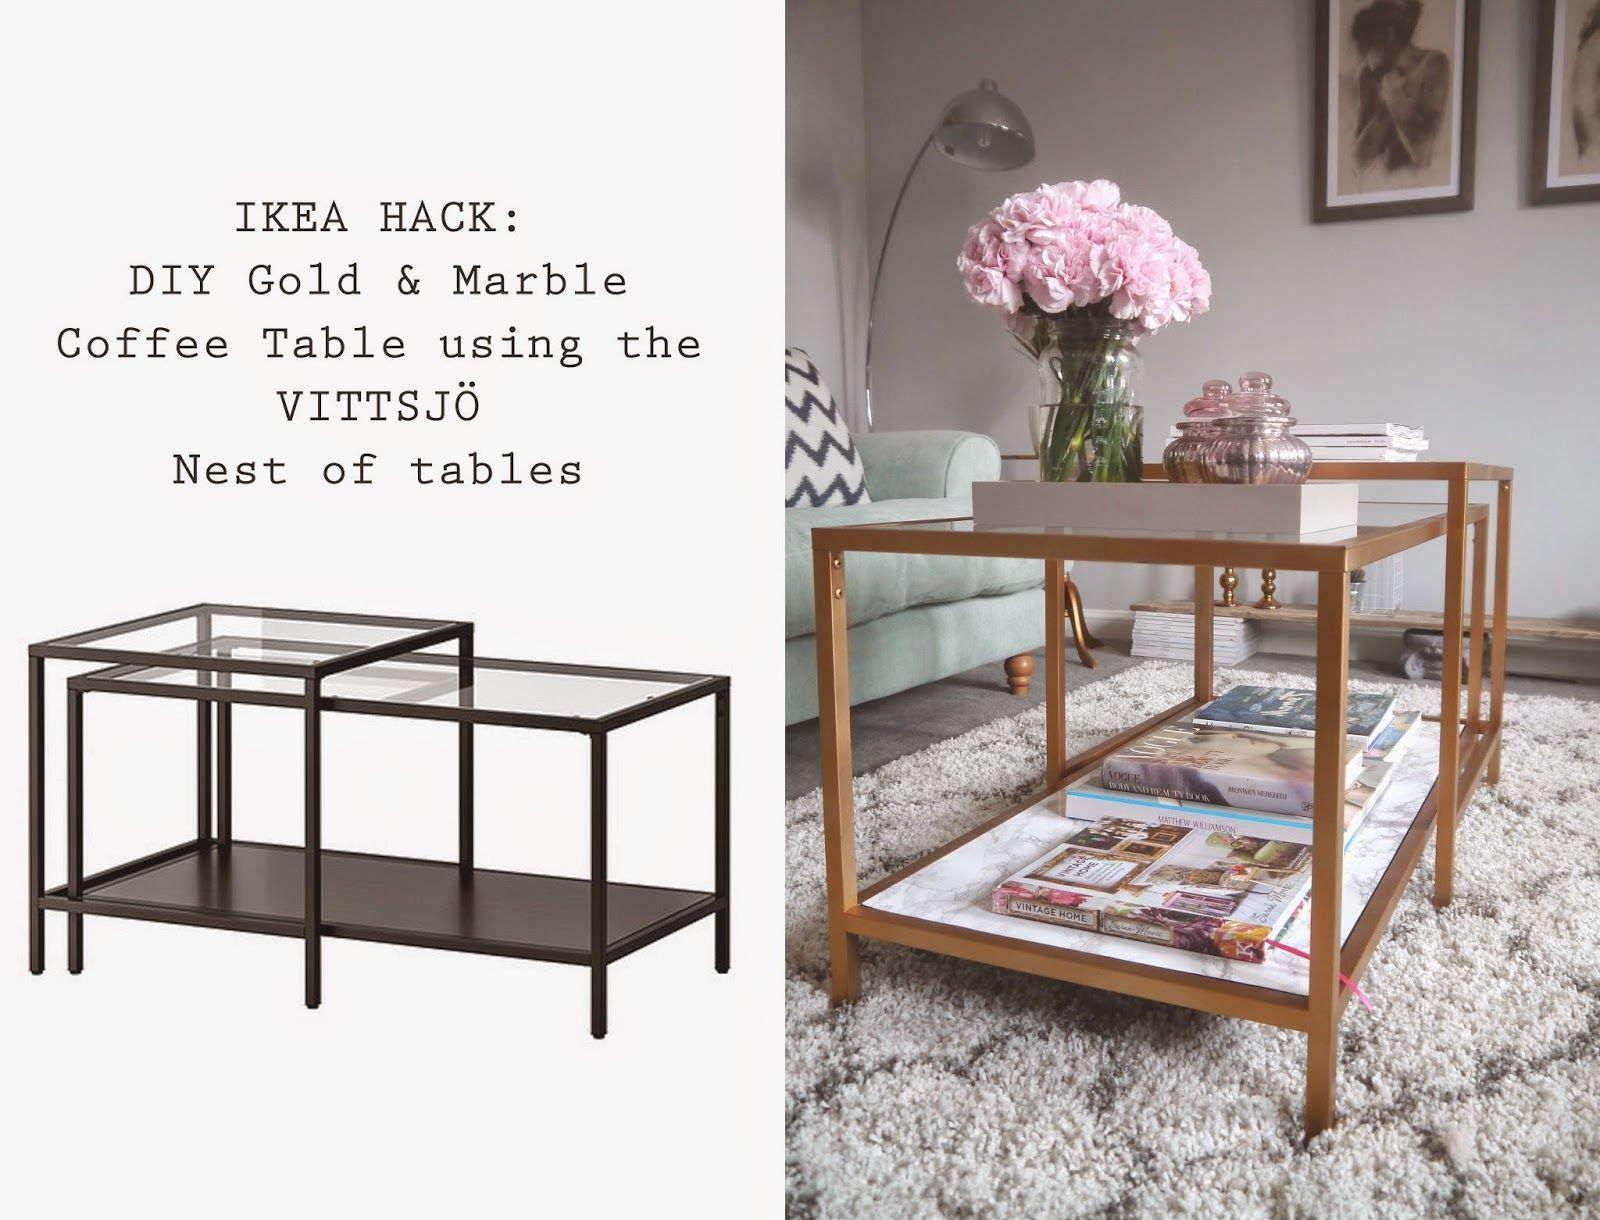 Table Basse Vintage Ikea Georgi A Ikea Hack A Gold Marble Coffee Table Inspiration